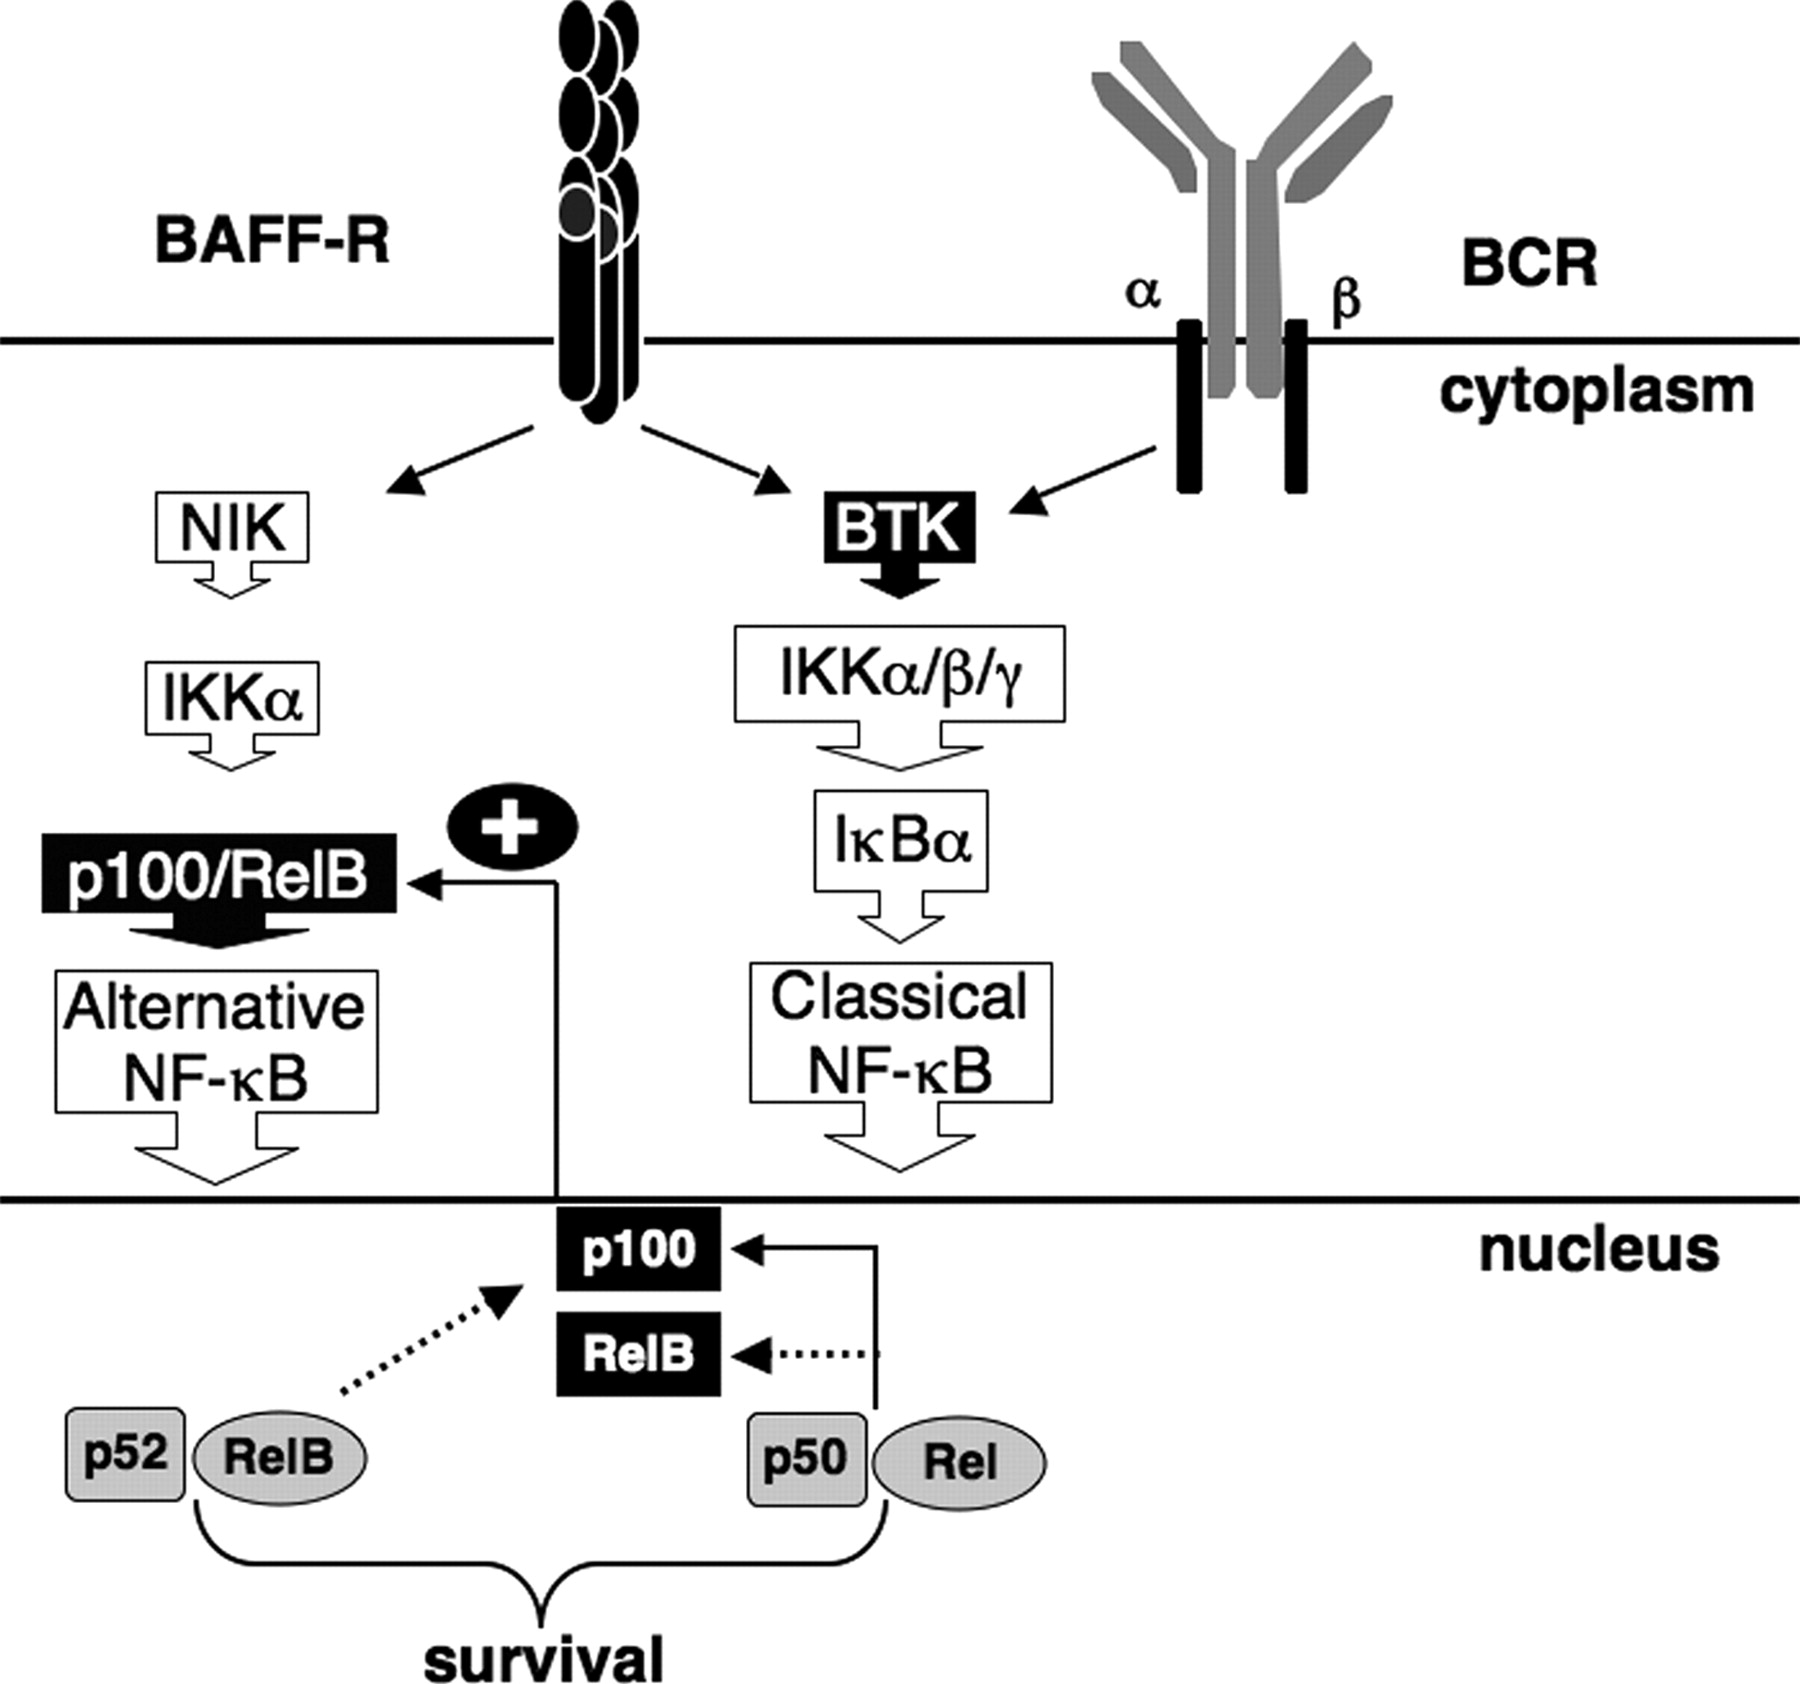 alternative pathway of nf-kb activation